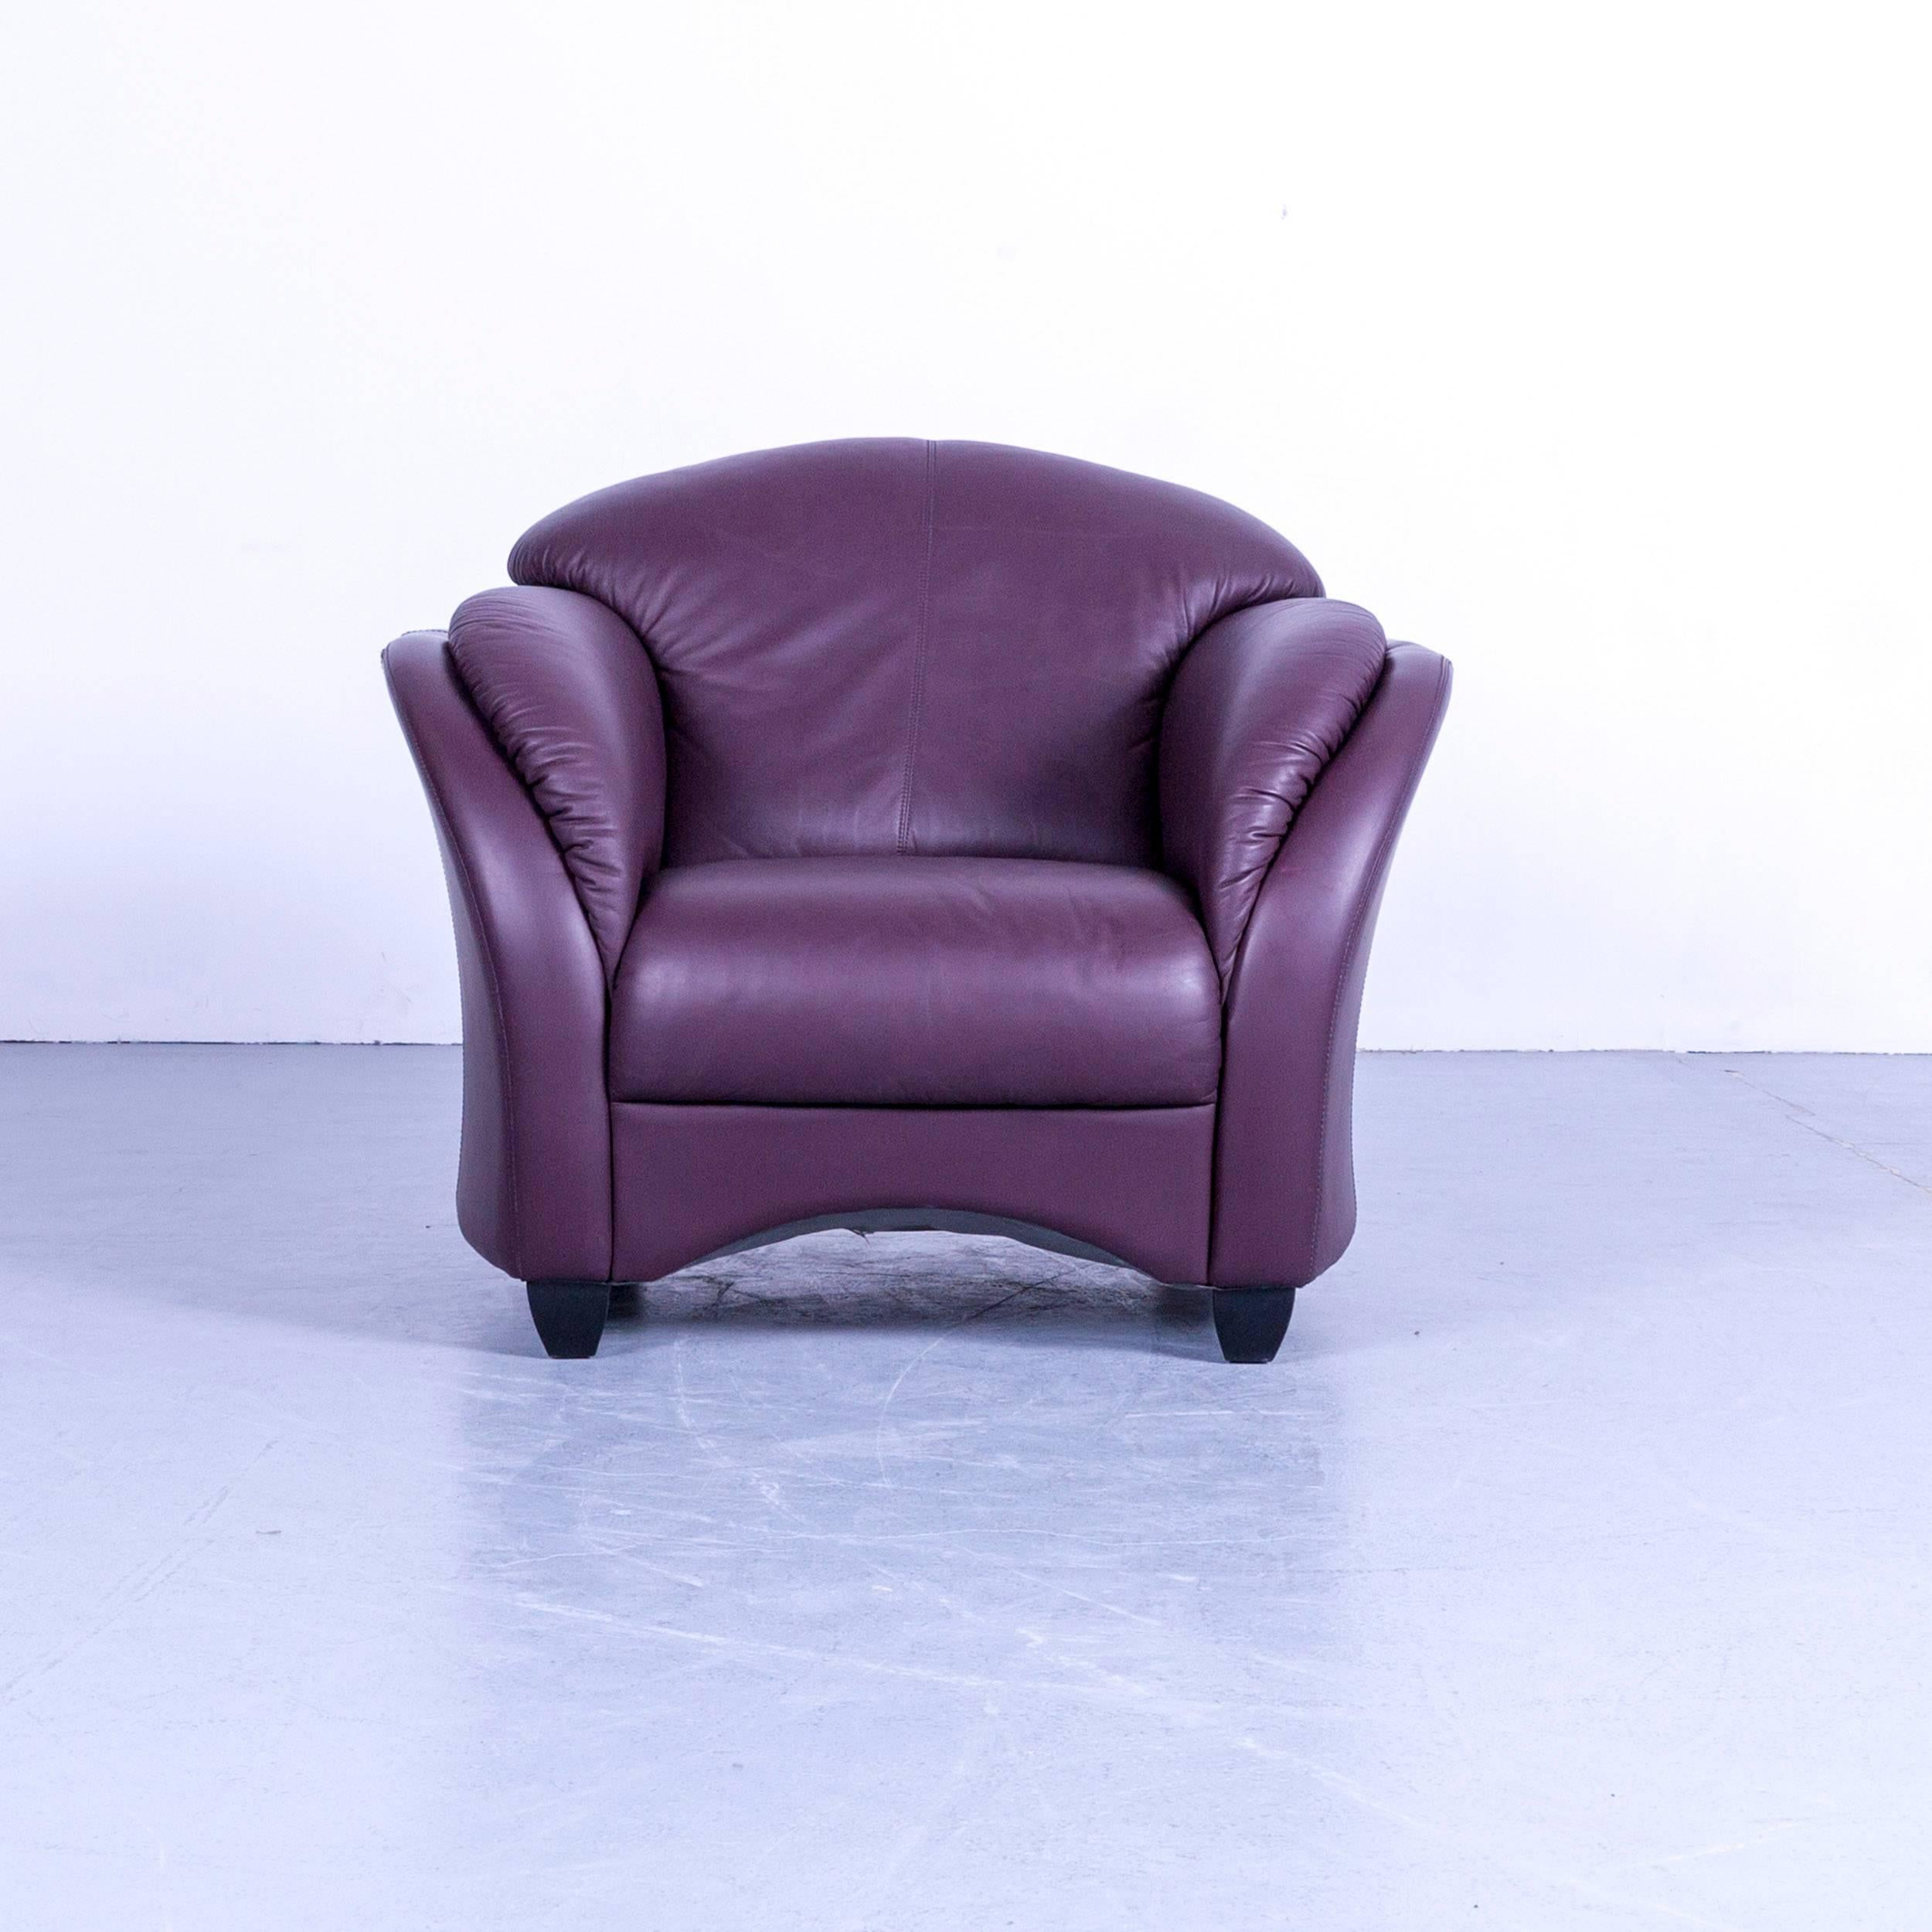 German Himolla Designer Armchair Set Two Purple Leather Velvet One Seater  Couch Modern For Sale